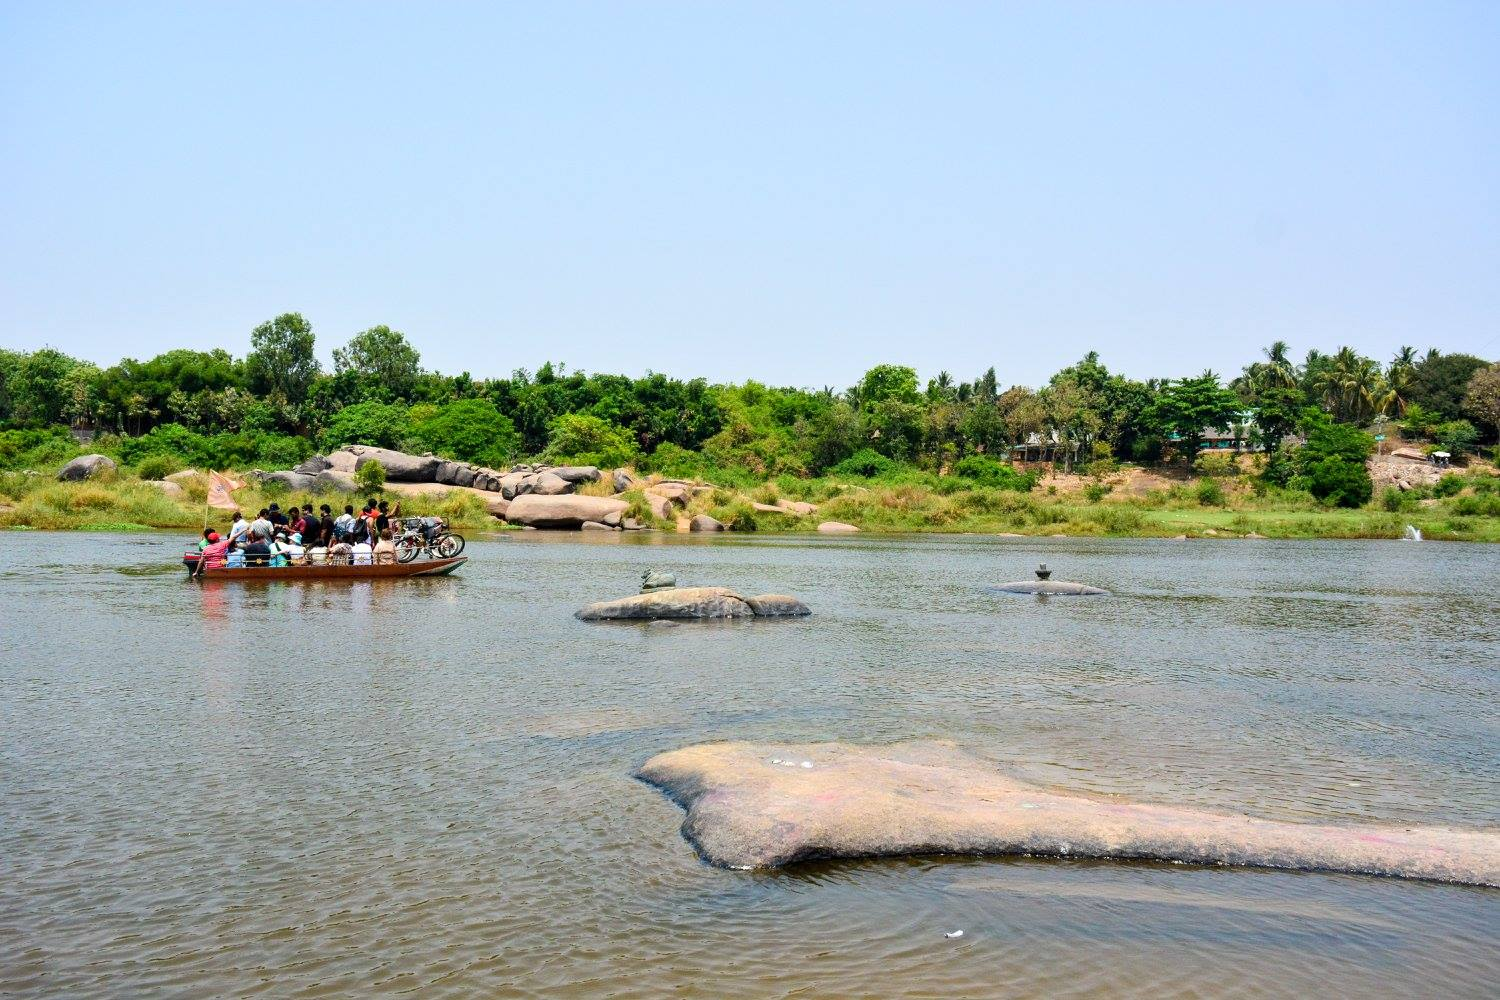 Boat Ride in Tungabhadra River